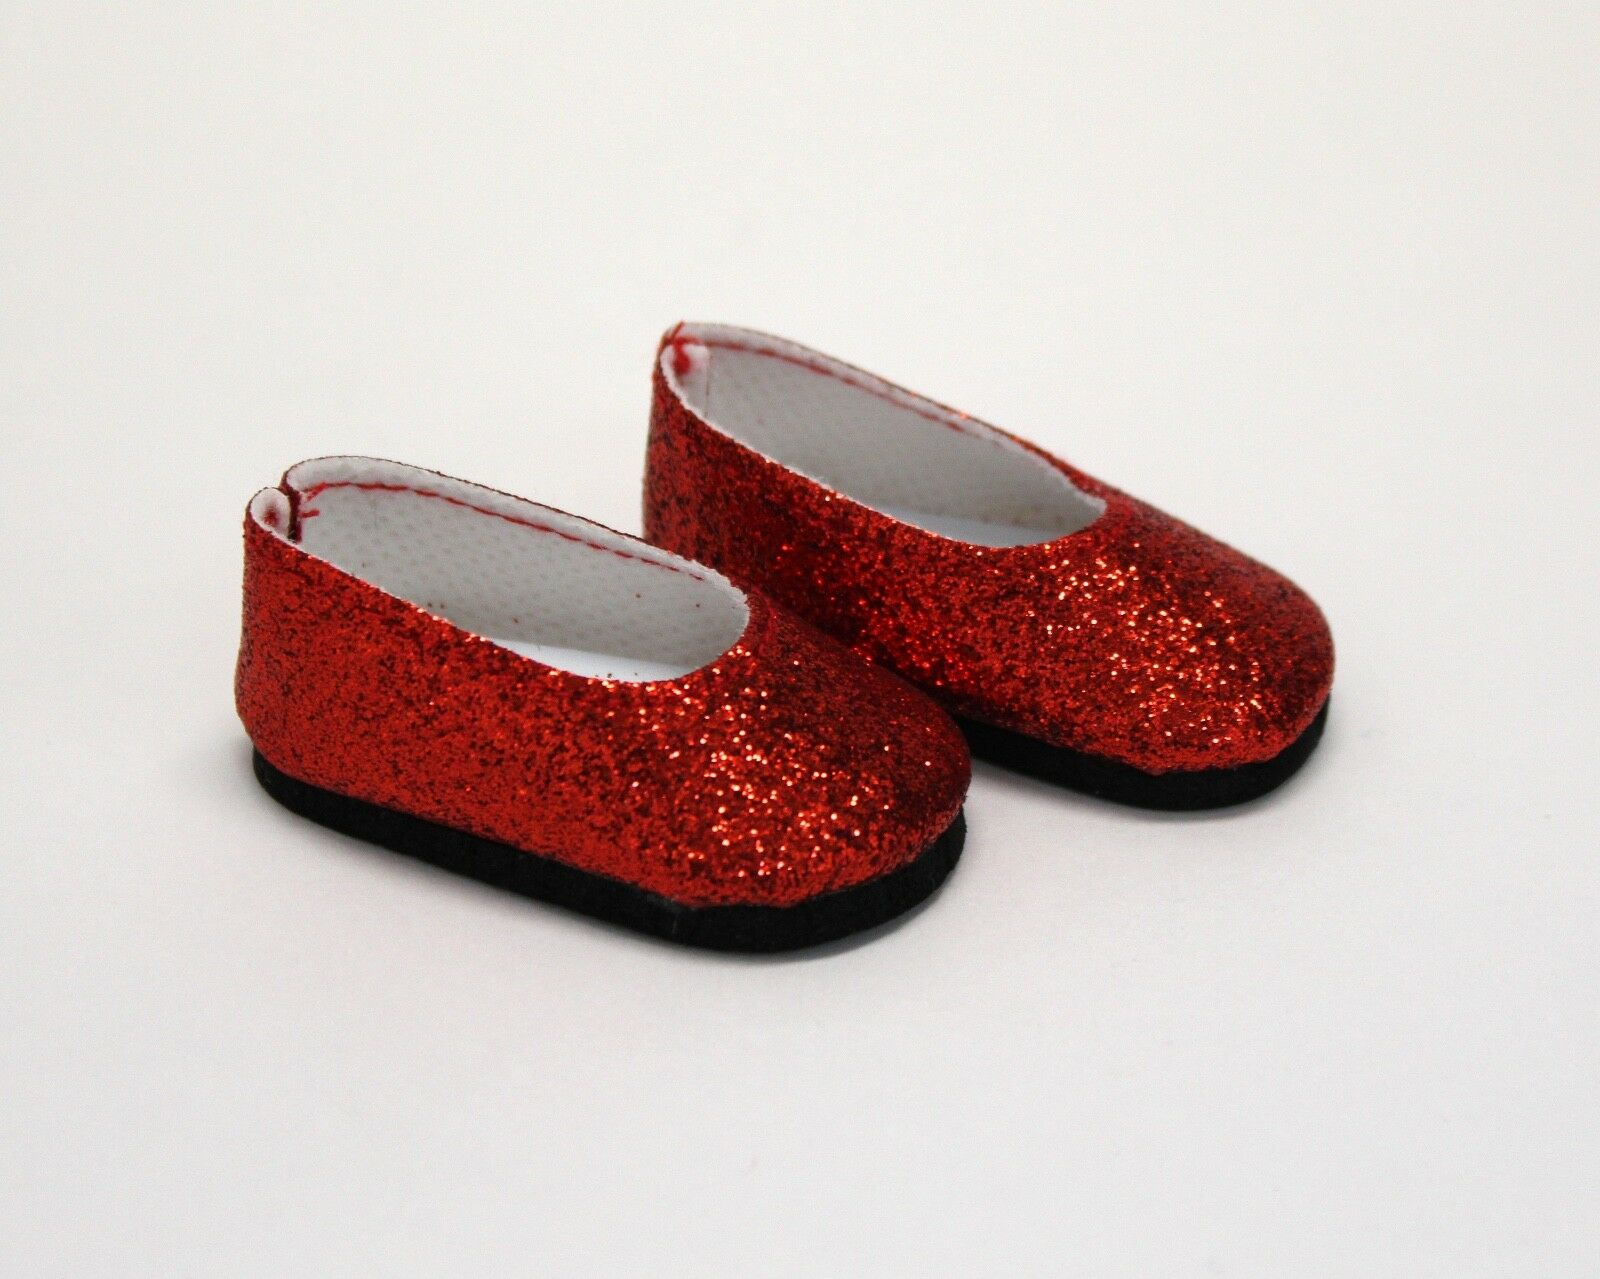 Dress-shoes-for-Wellie-Wisher-14-5-034-Dolls-Red-Silver-Glitter-Dress-Shoes thumbnail 4